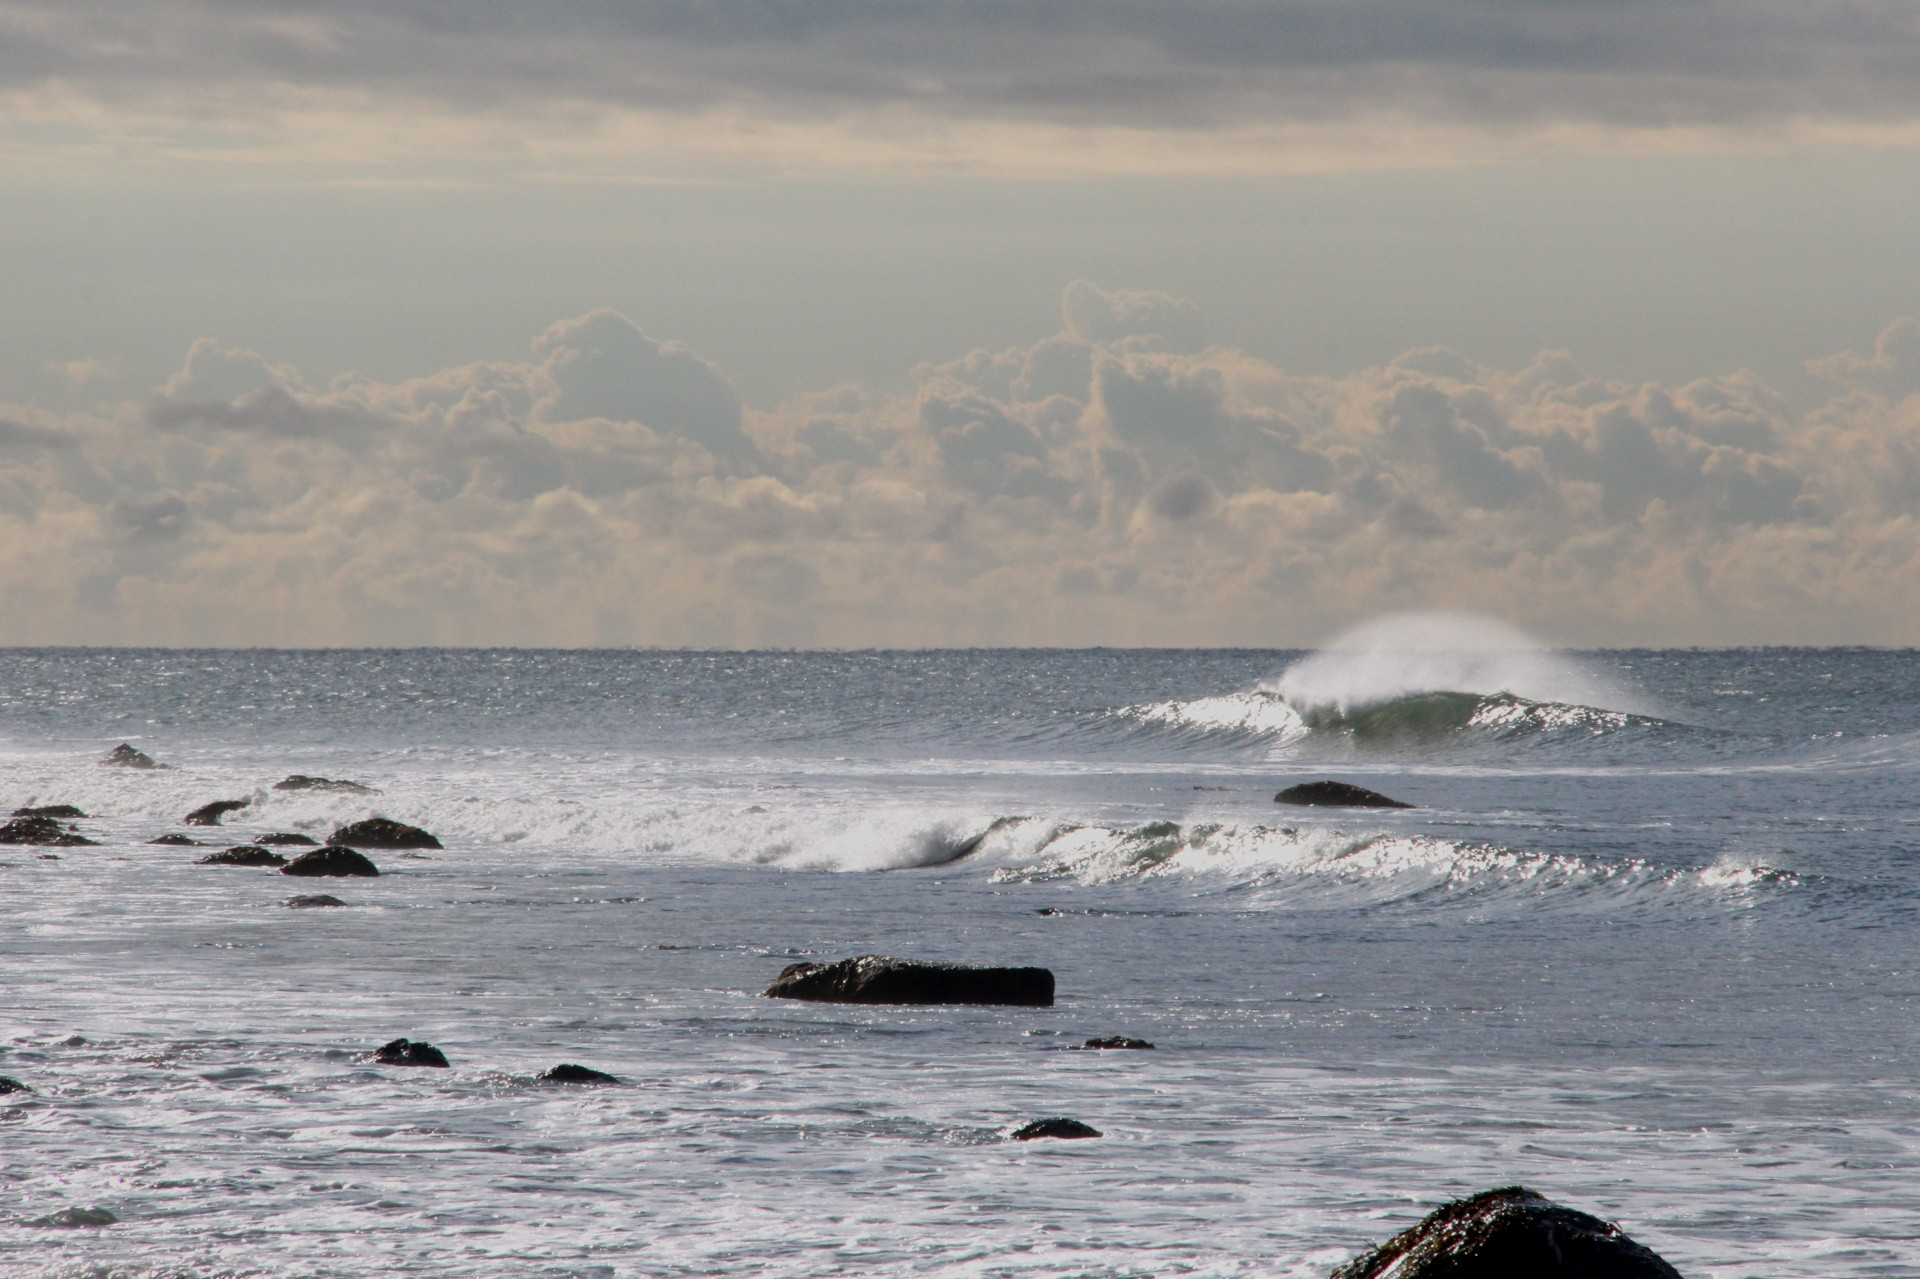 Mike Chlala's photo of Misquamicut